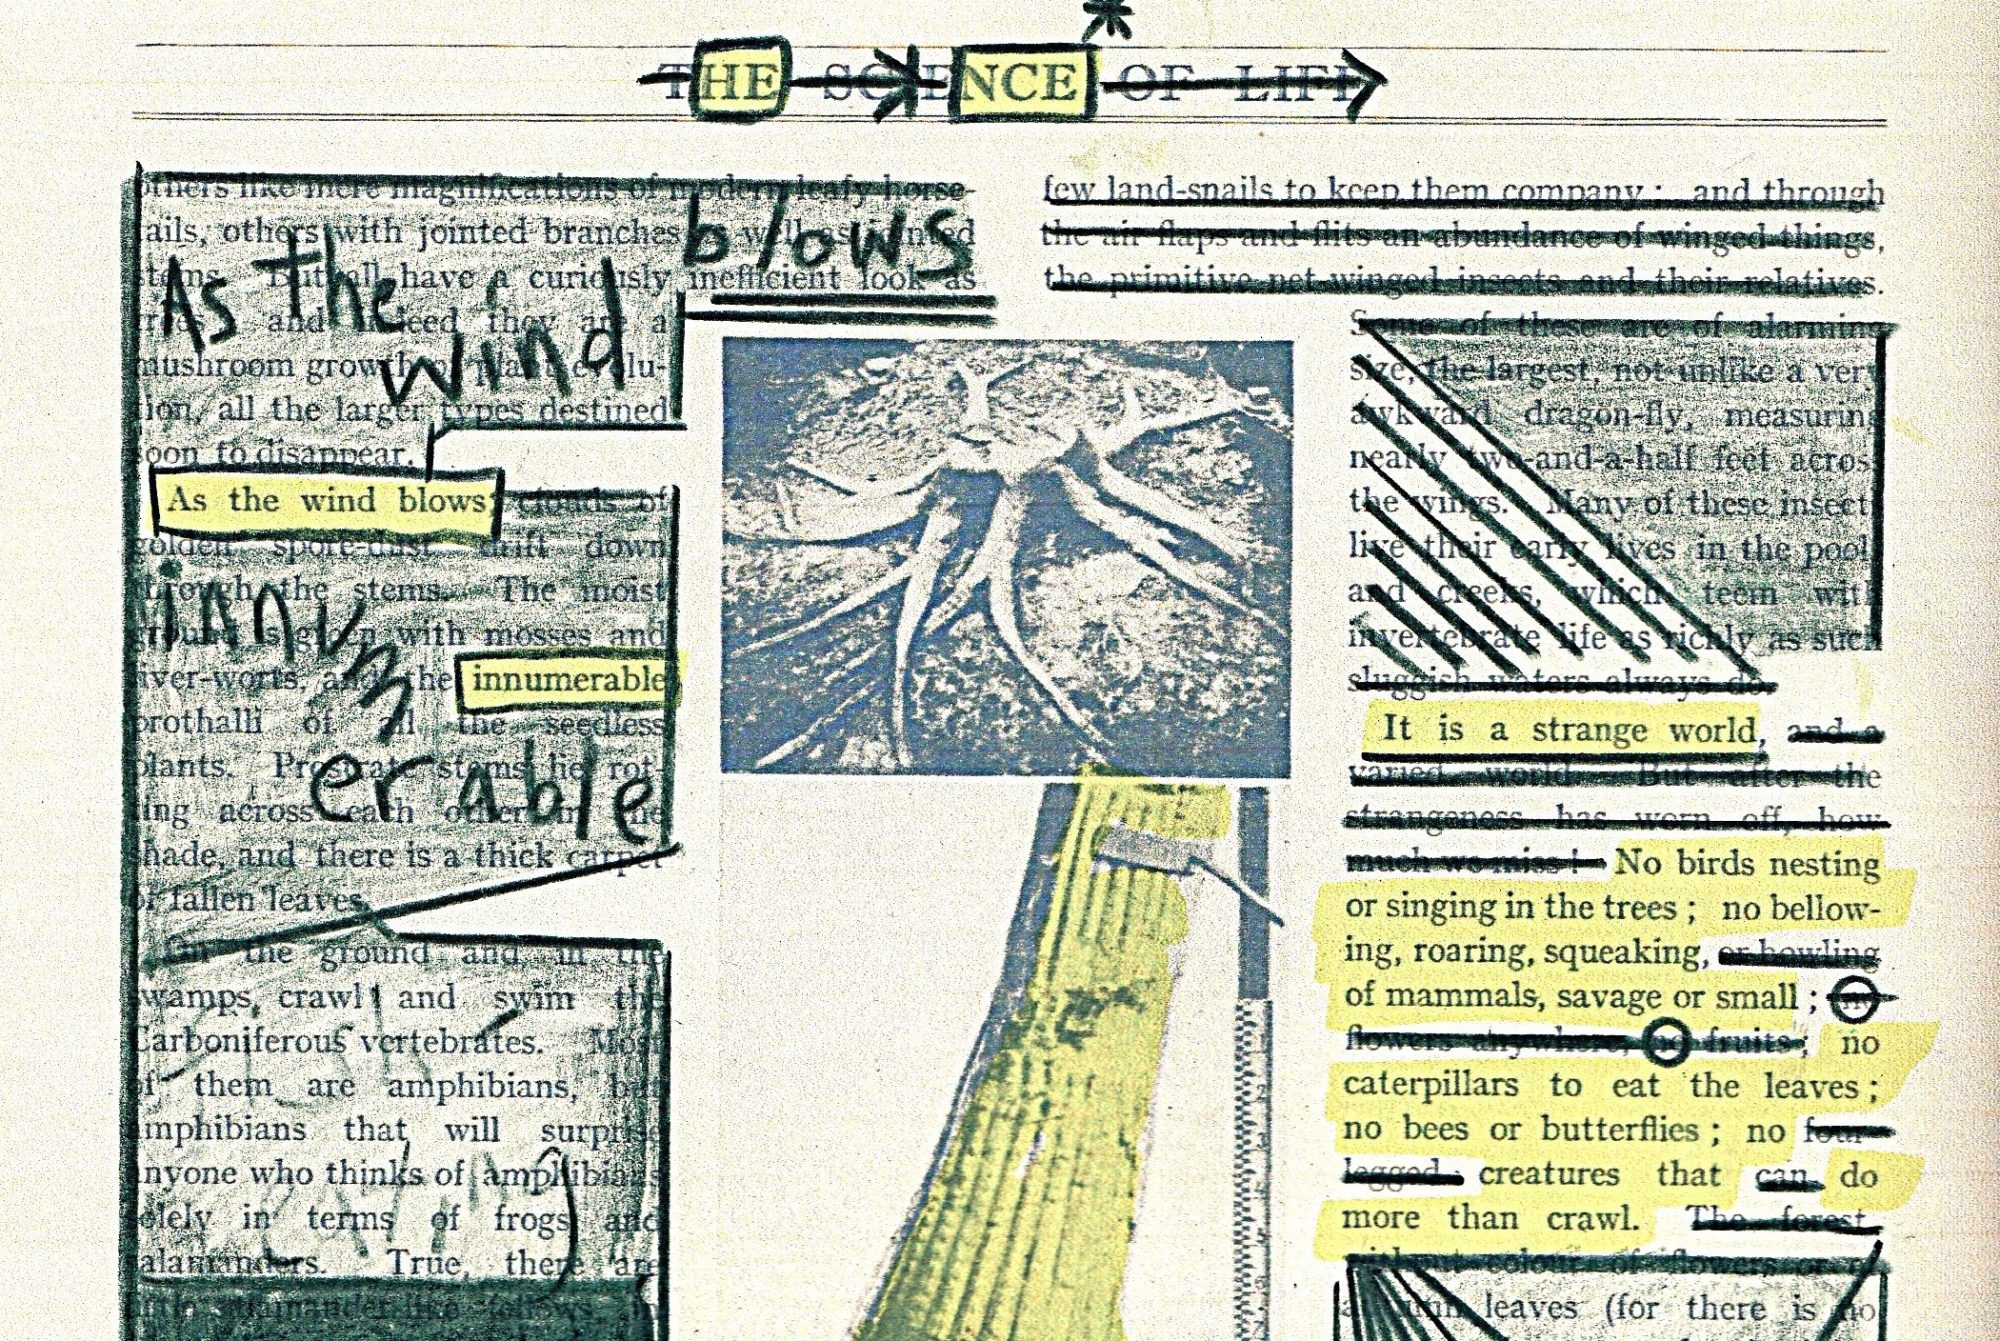 An erasure poem, scribbled and doodled over a page taken from 'The Science of Life', it reads: Hence, as the wind blows innumerable... (continued on the challenge page)